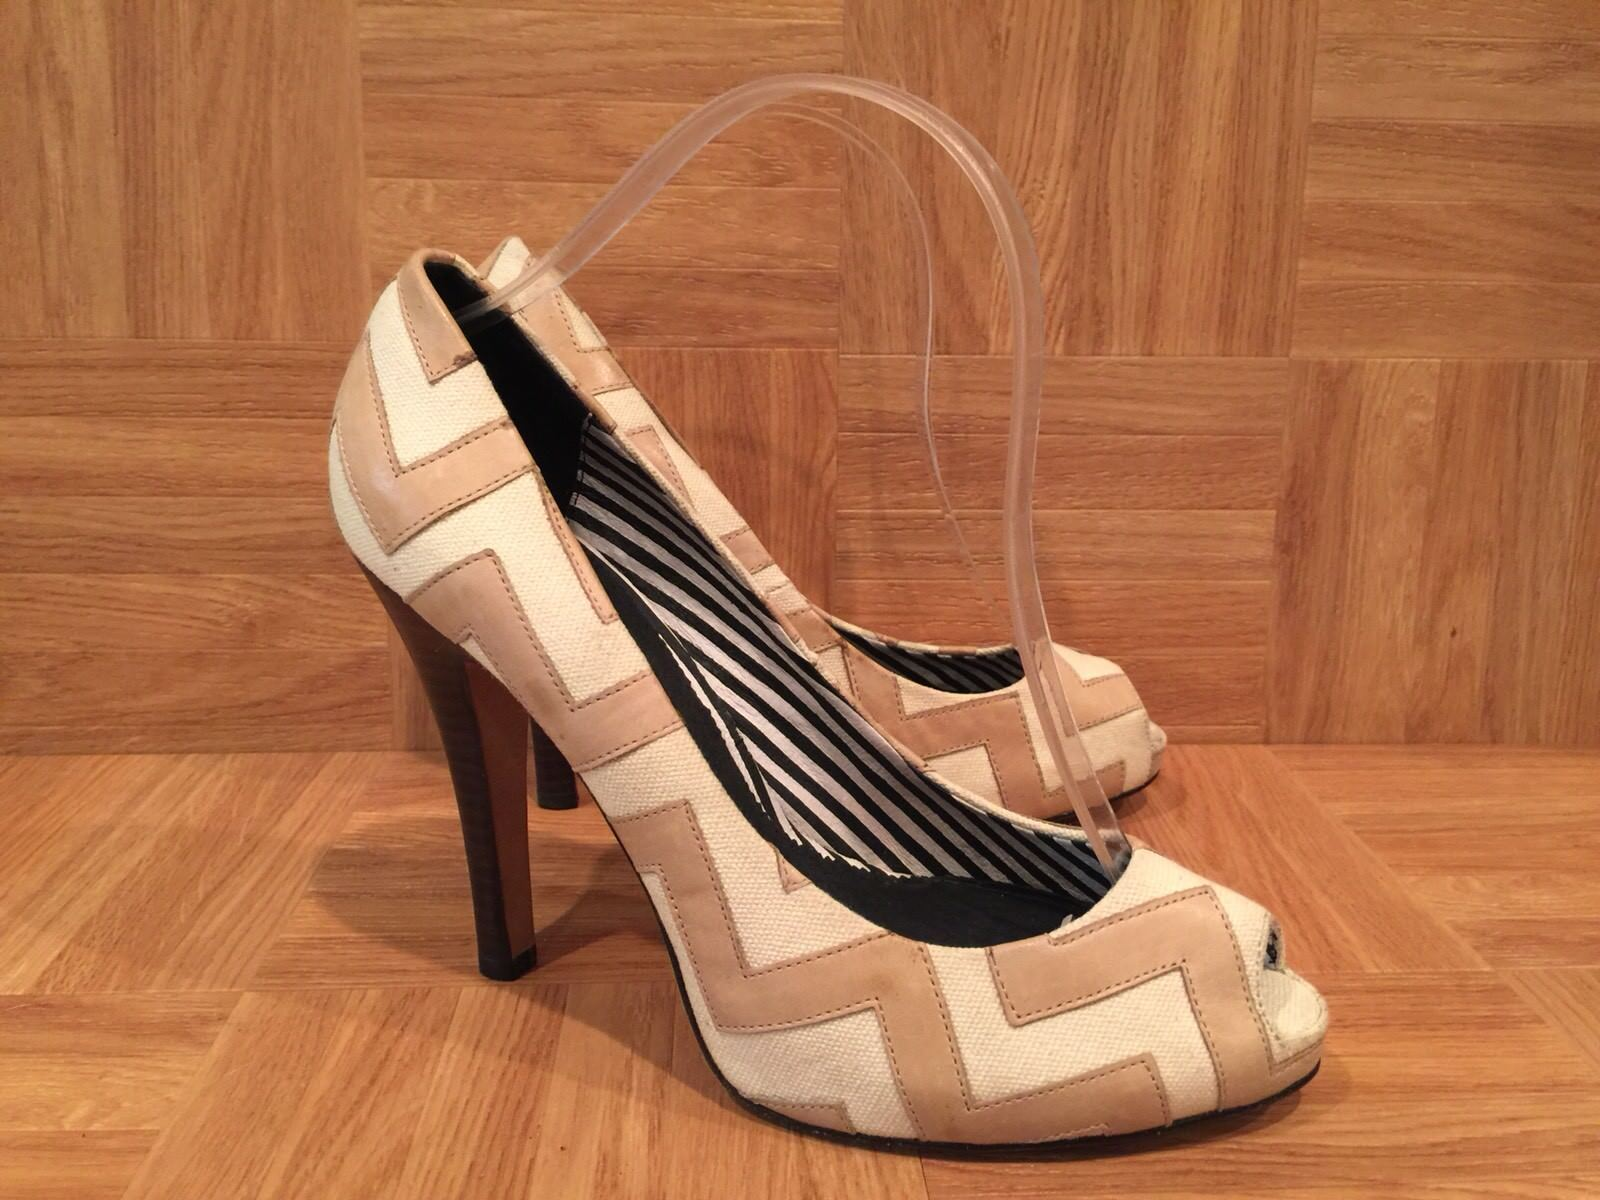 335 ️ L.A.M.B. LAMB Zig Zag Peep Toe Pumps Canvas Leather Nude Sz 8.5 EUC